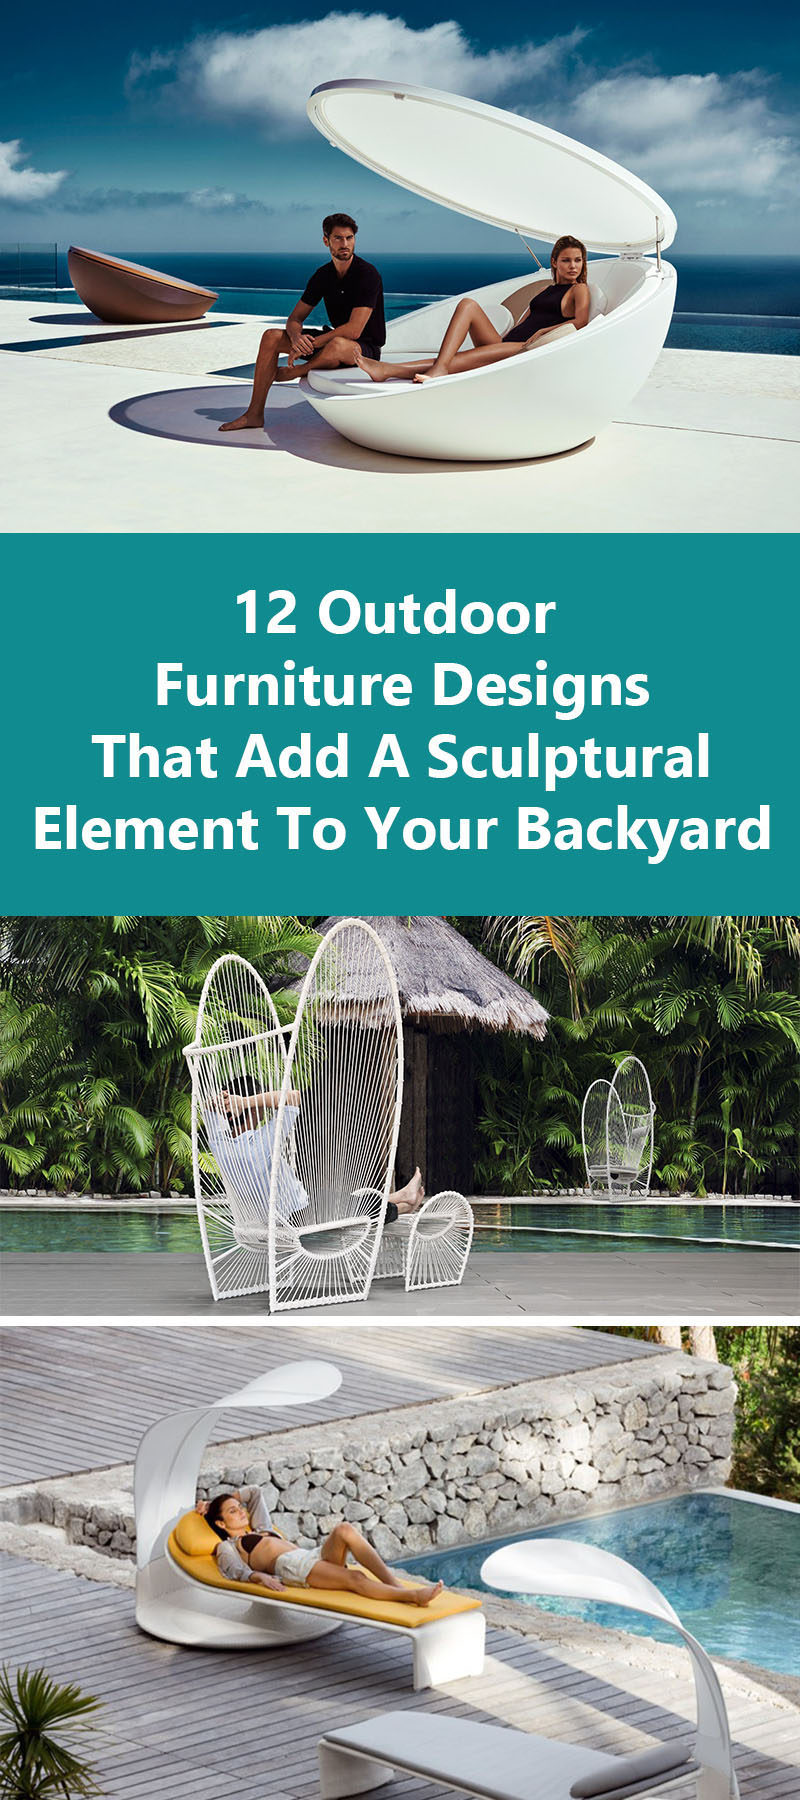 12 Outdoor Furniture Designs That Add A Sculptural Element To Your Backyard //